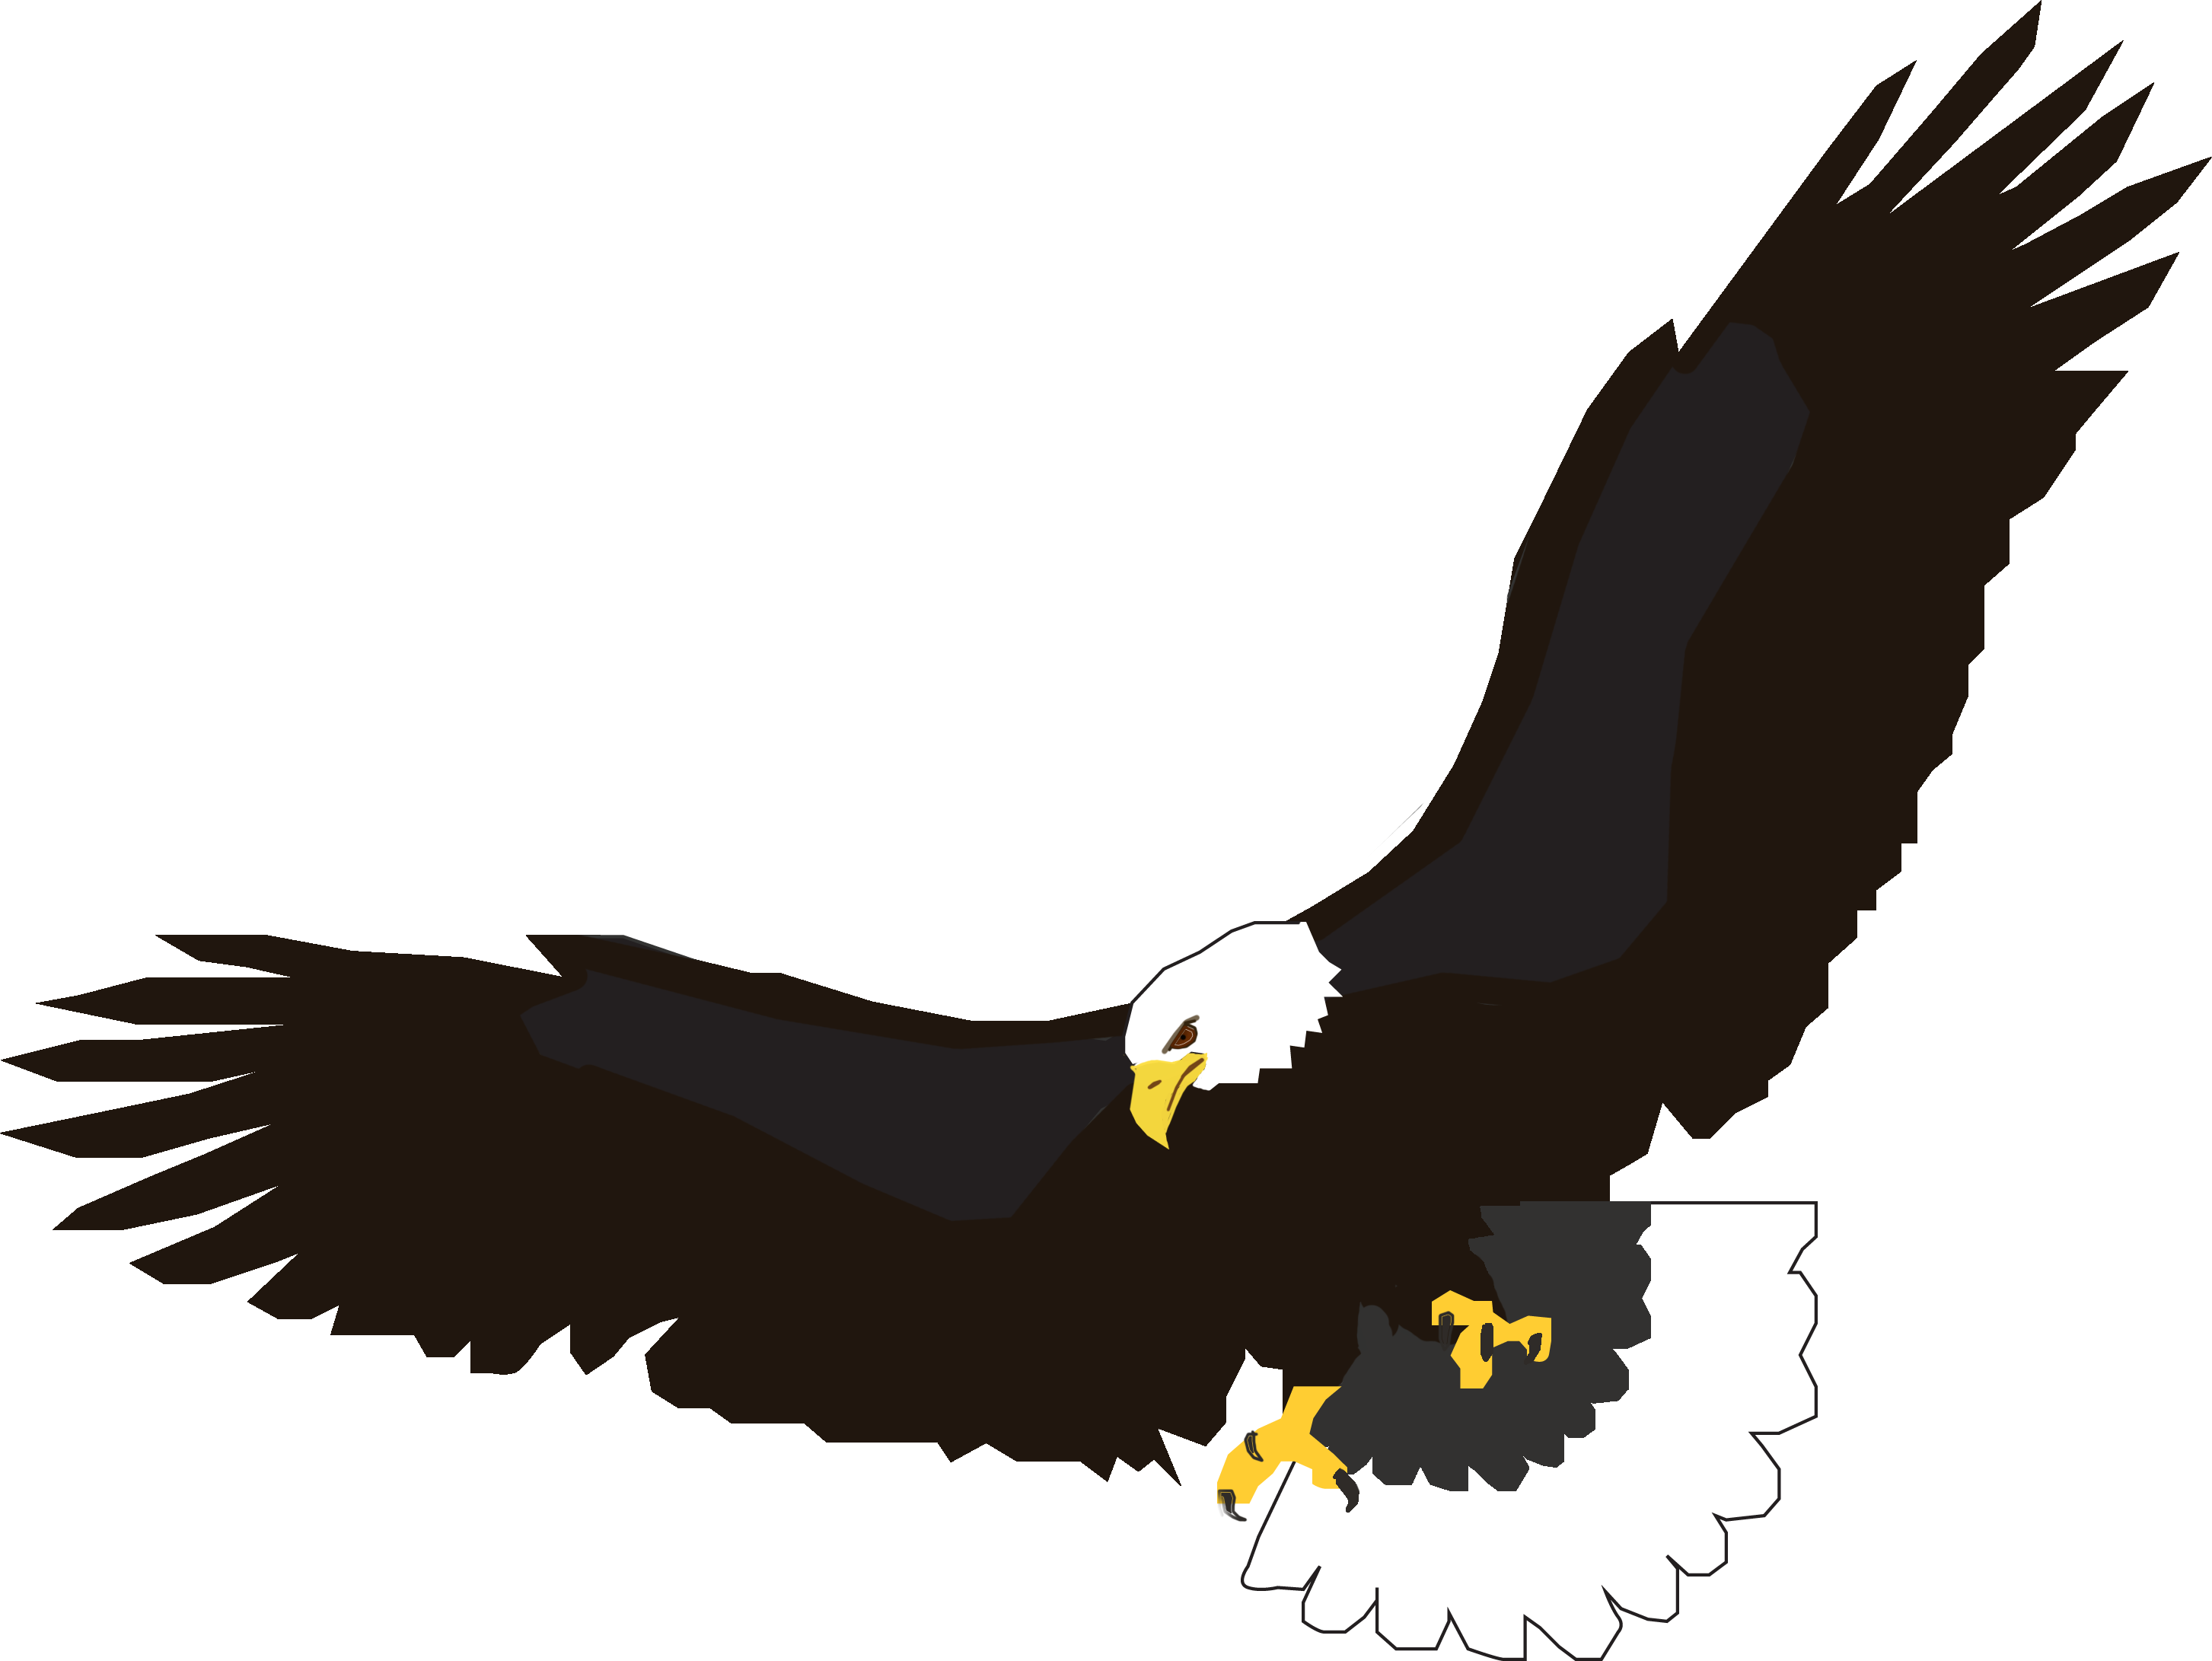 Bald eagle clipart logo png clip art library library Flying bald eagle clipart - ClipartFest clip art library library